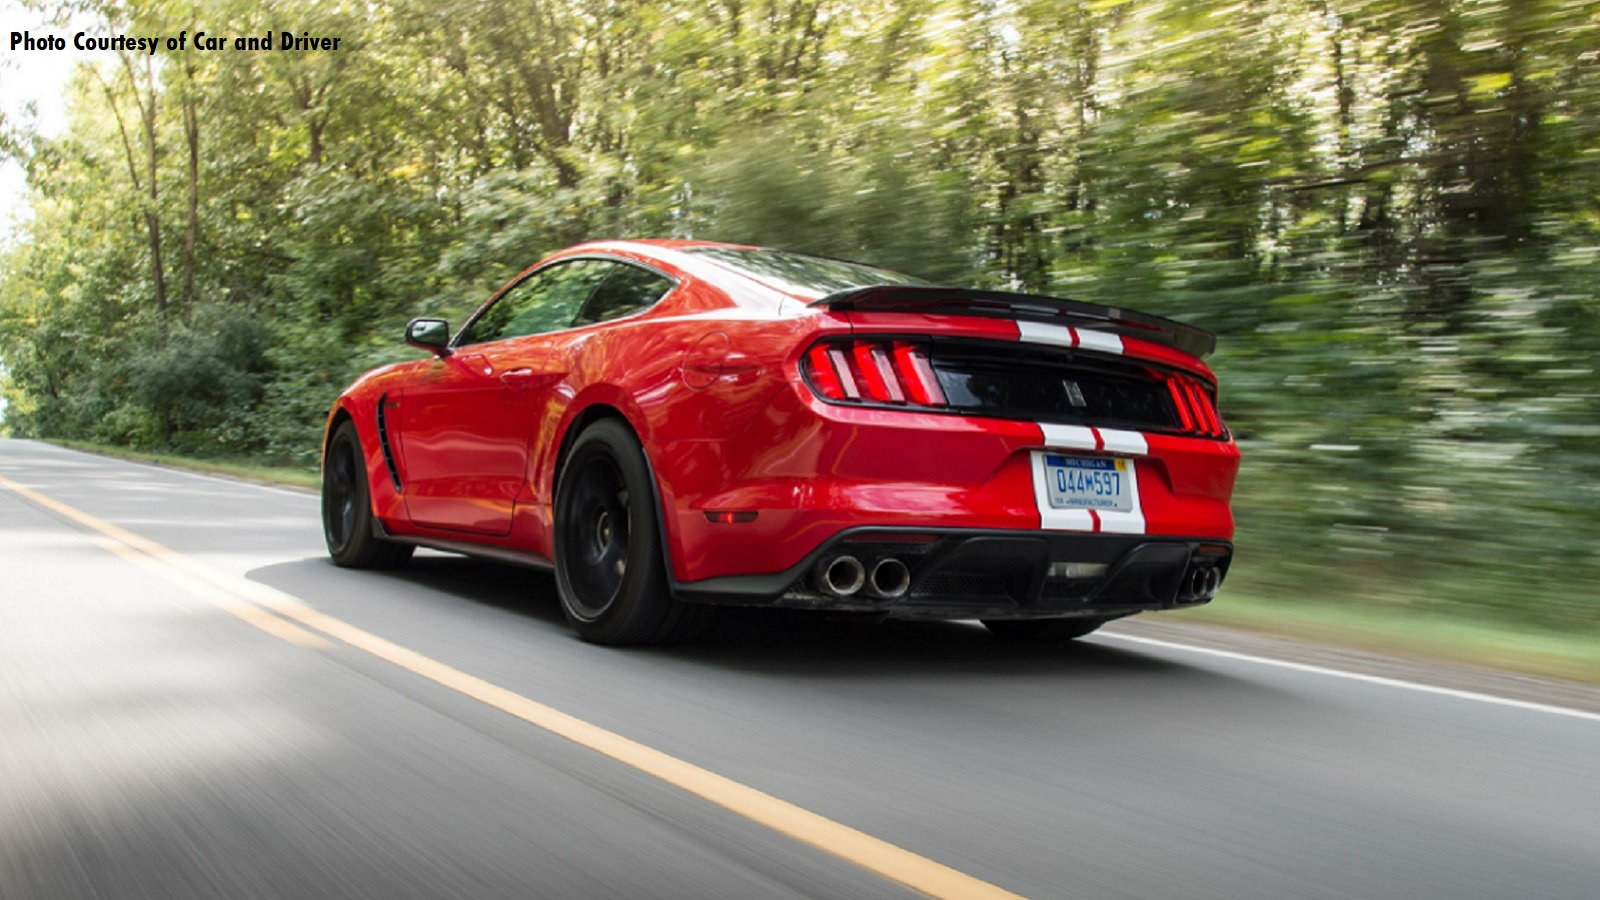 Grand Sport C7 vs the Shelby Mustang GT350